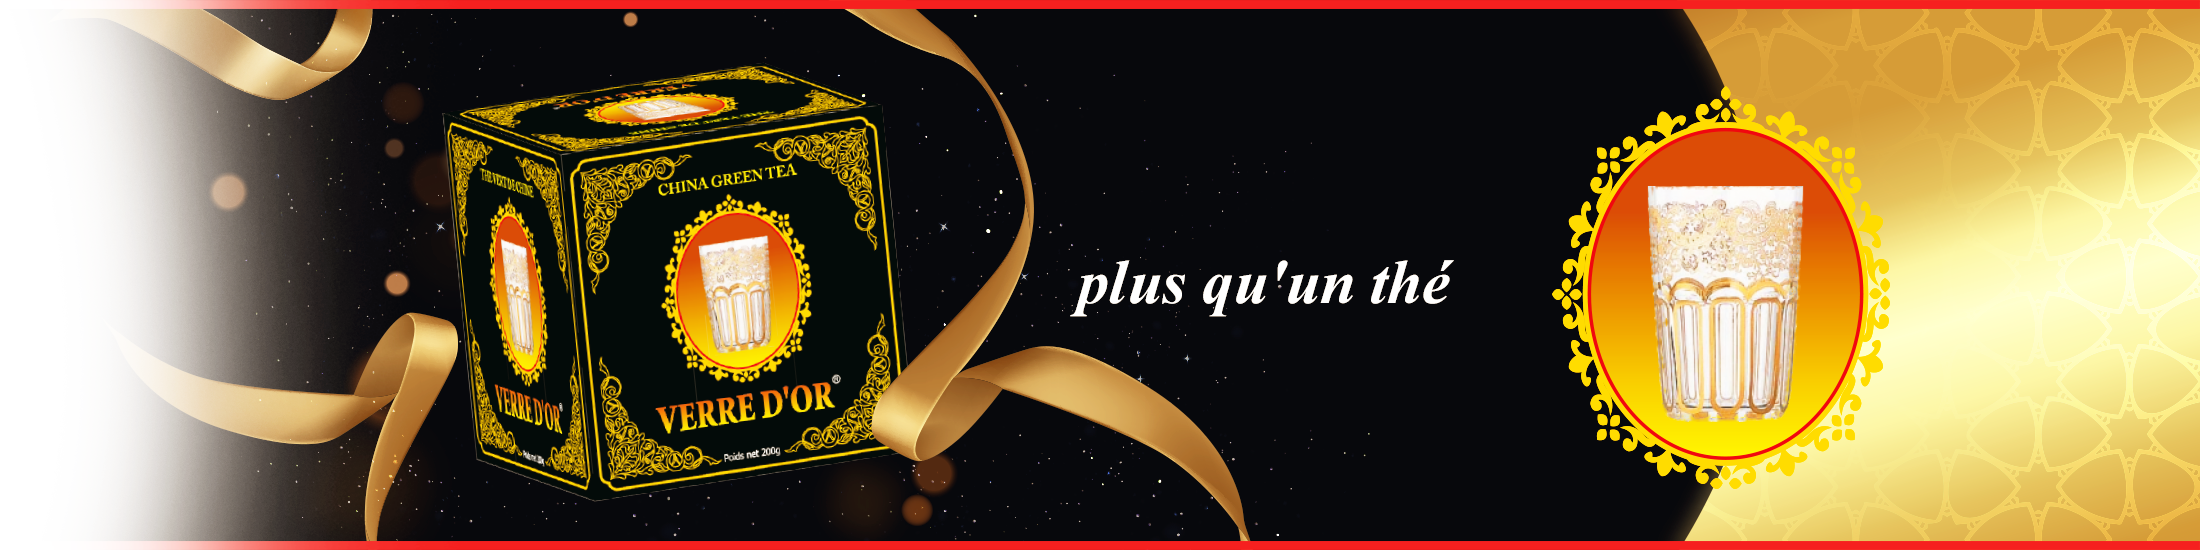 VERRE D'OR